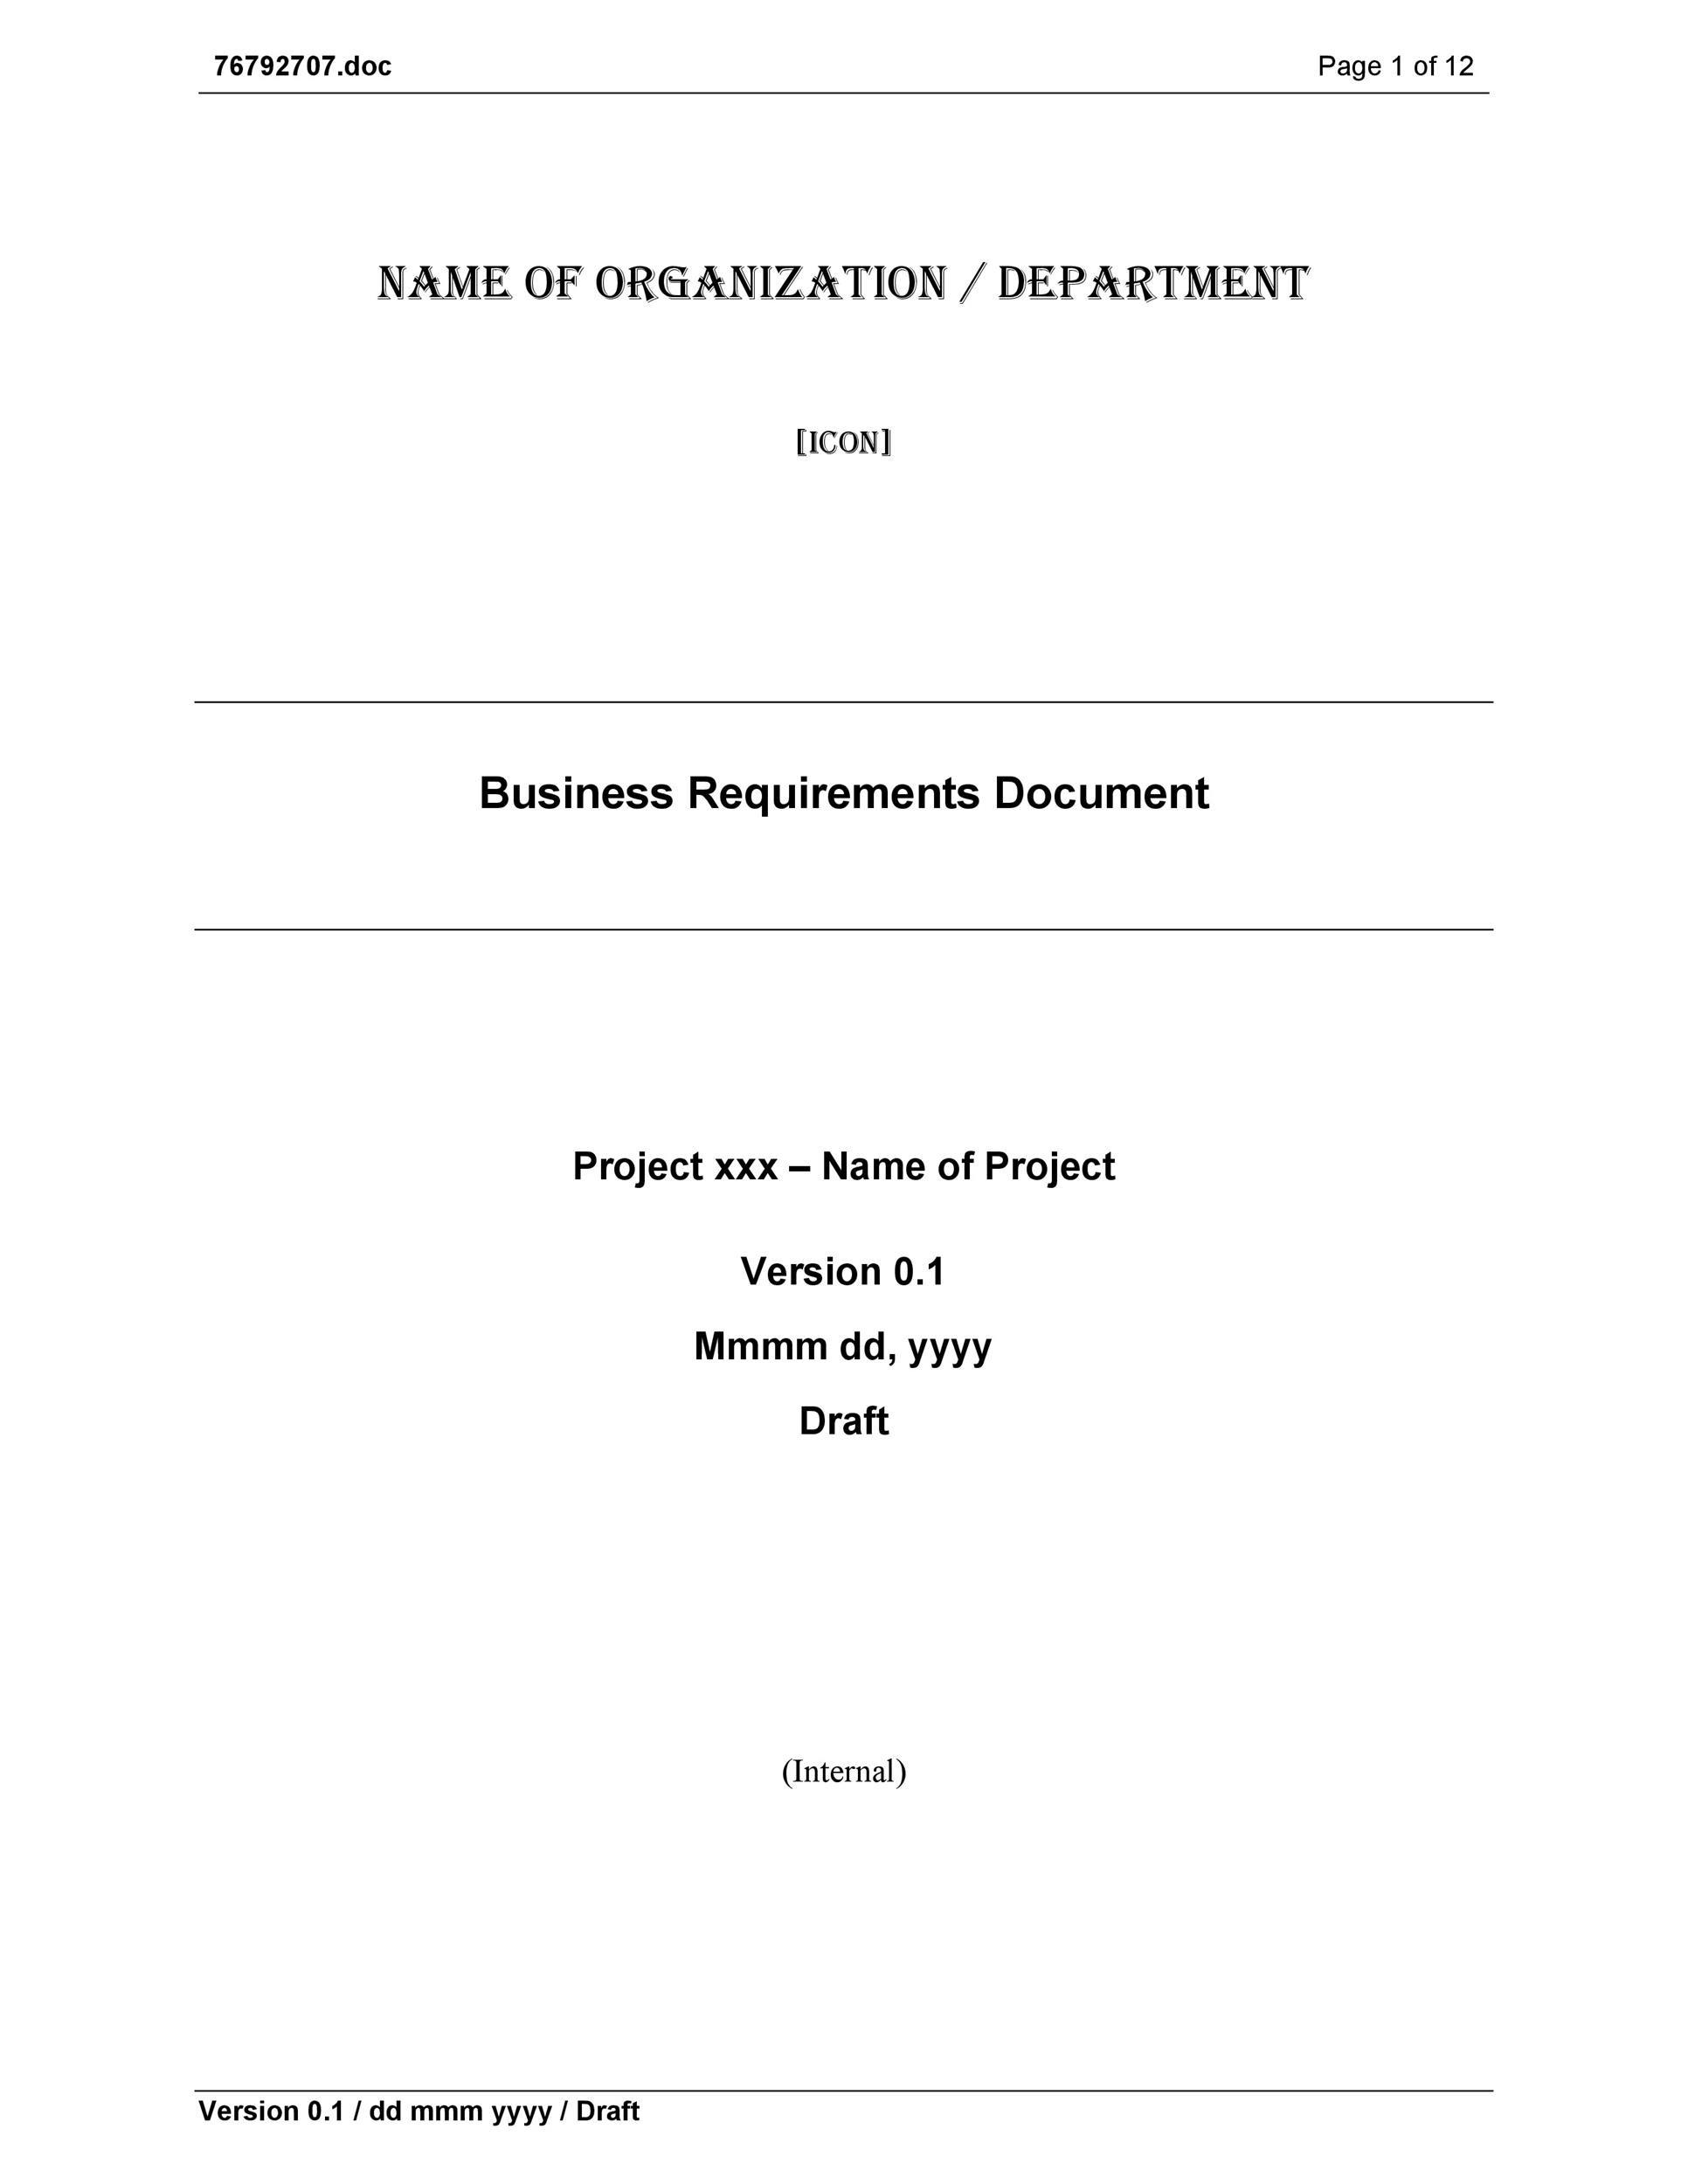 Free business requirements document template 24